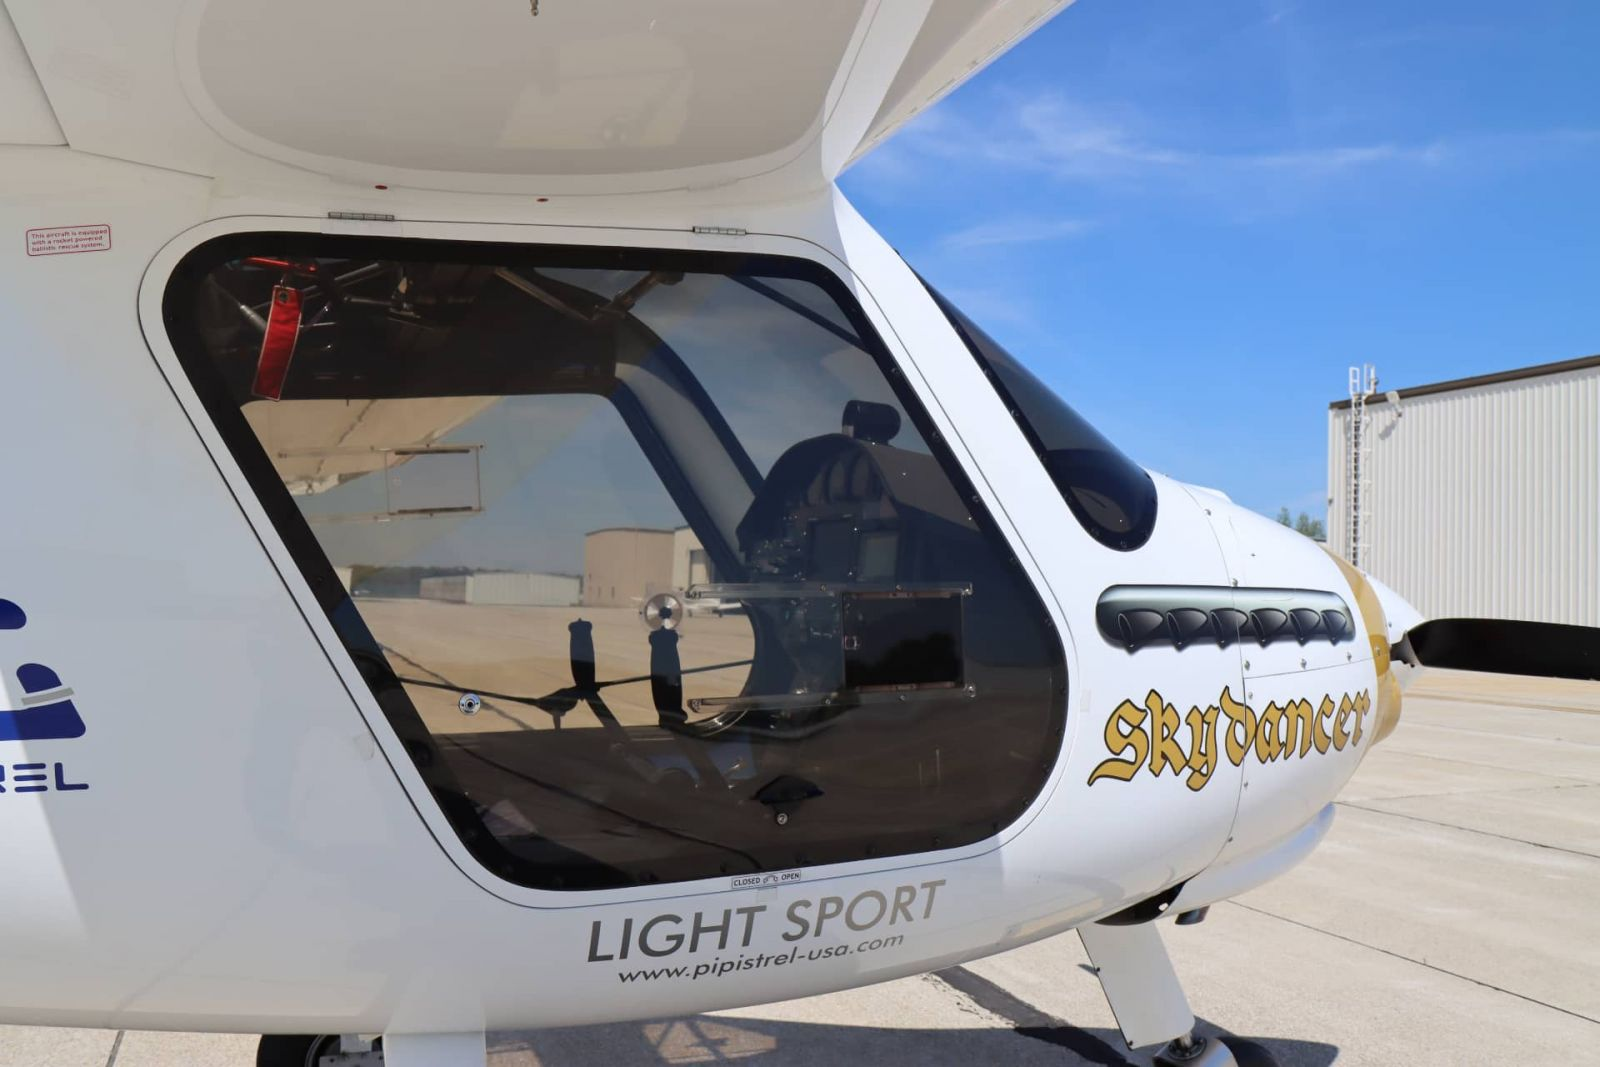 The Pipistrel Sinus aircraft features a side-by-side seating arrangement, which acommodated the training of a deaf student who needed to easily communicate with the flight instructor. (Purdue University photo/John O'Malley)